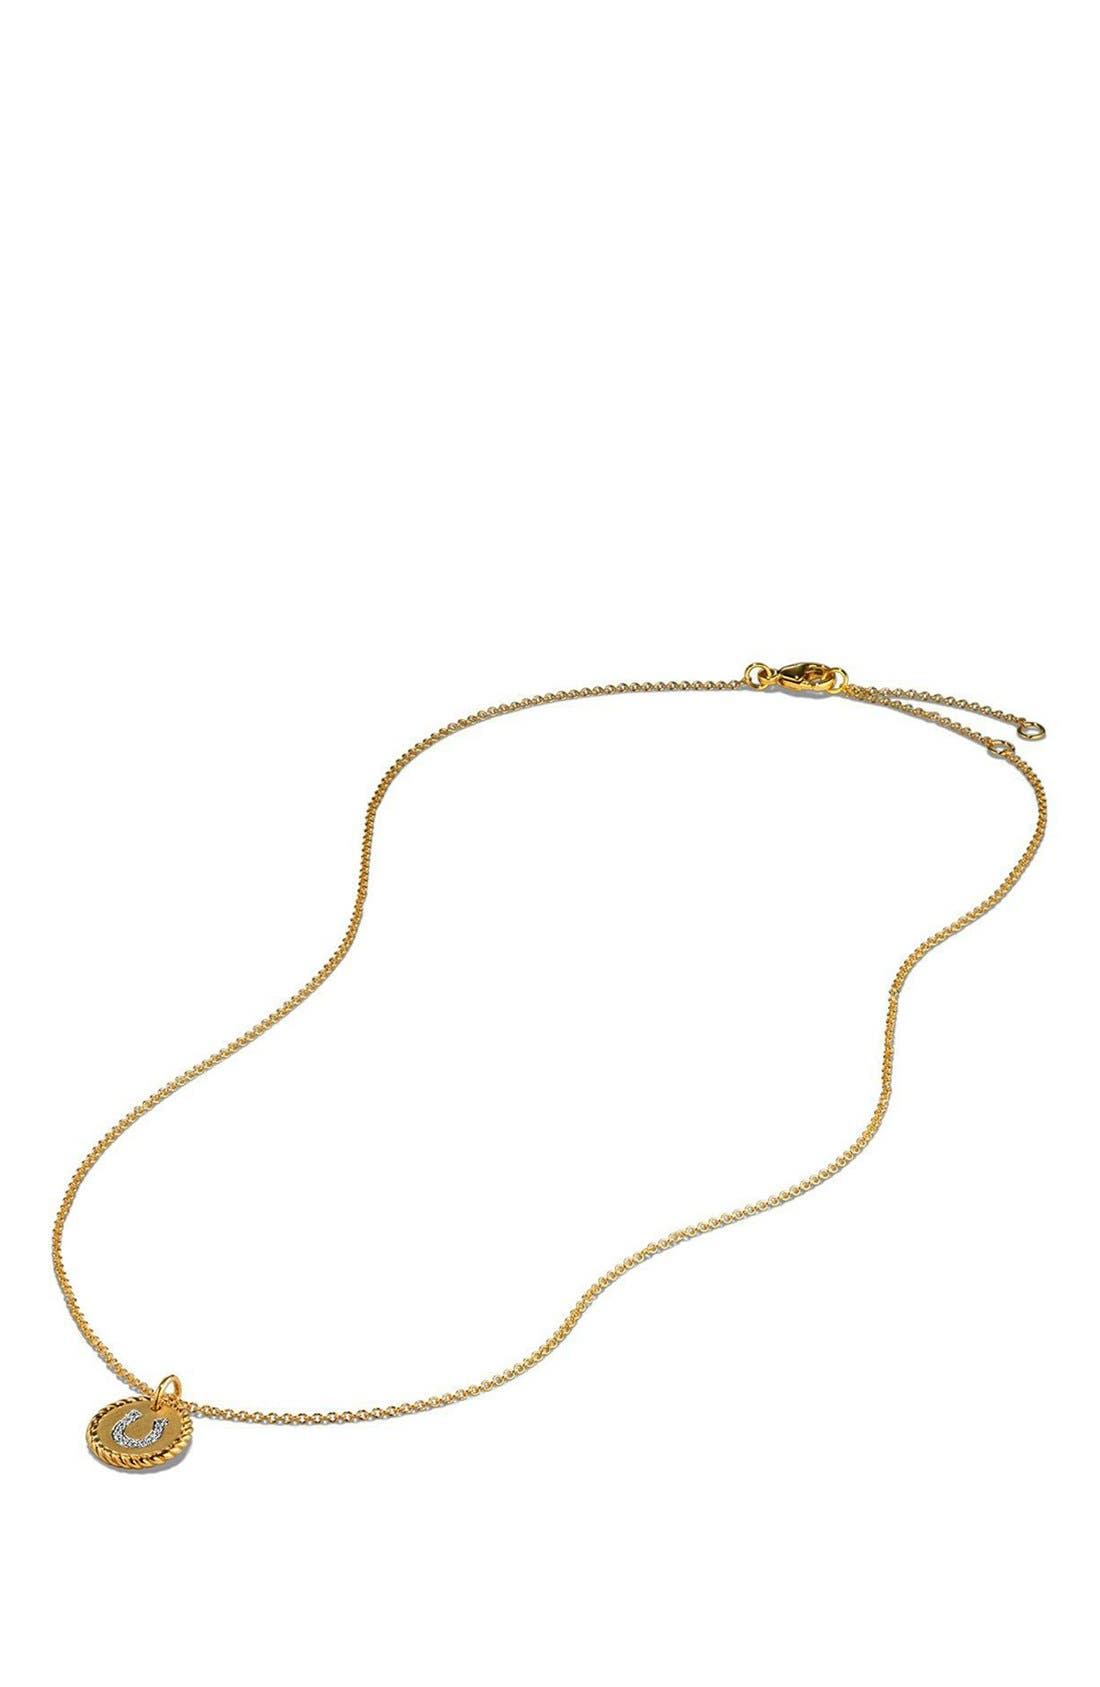 'Cable Collectibles' Horseshoe Charm Necklace with Diamonds in Gold,                             Alternate thumbnail 5, color,                             GOLD